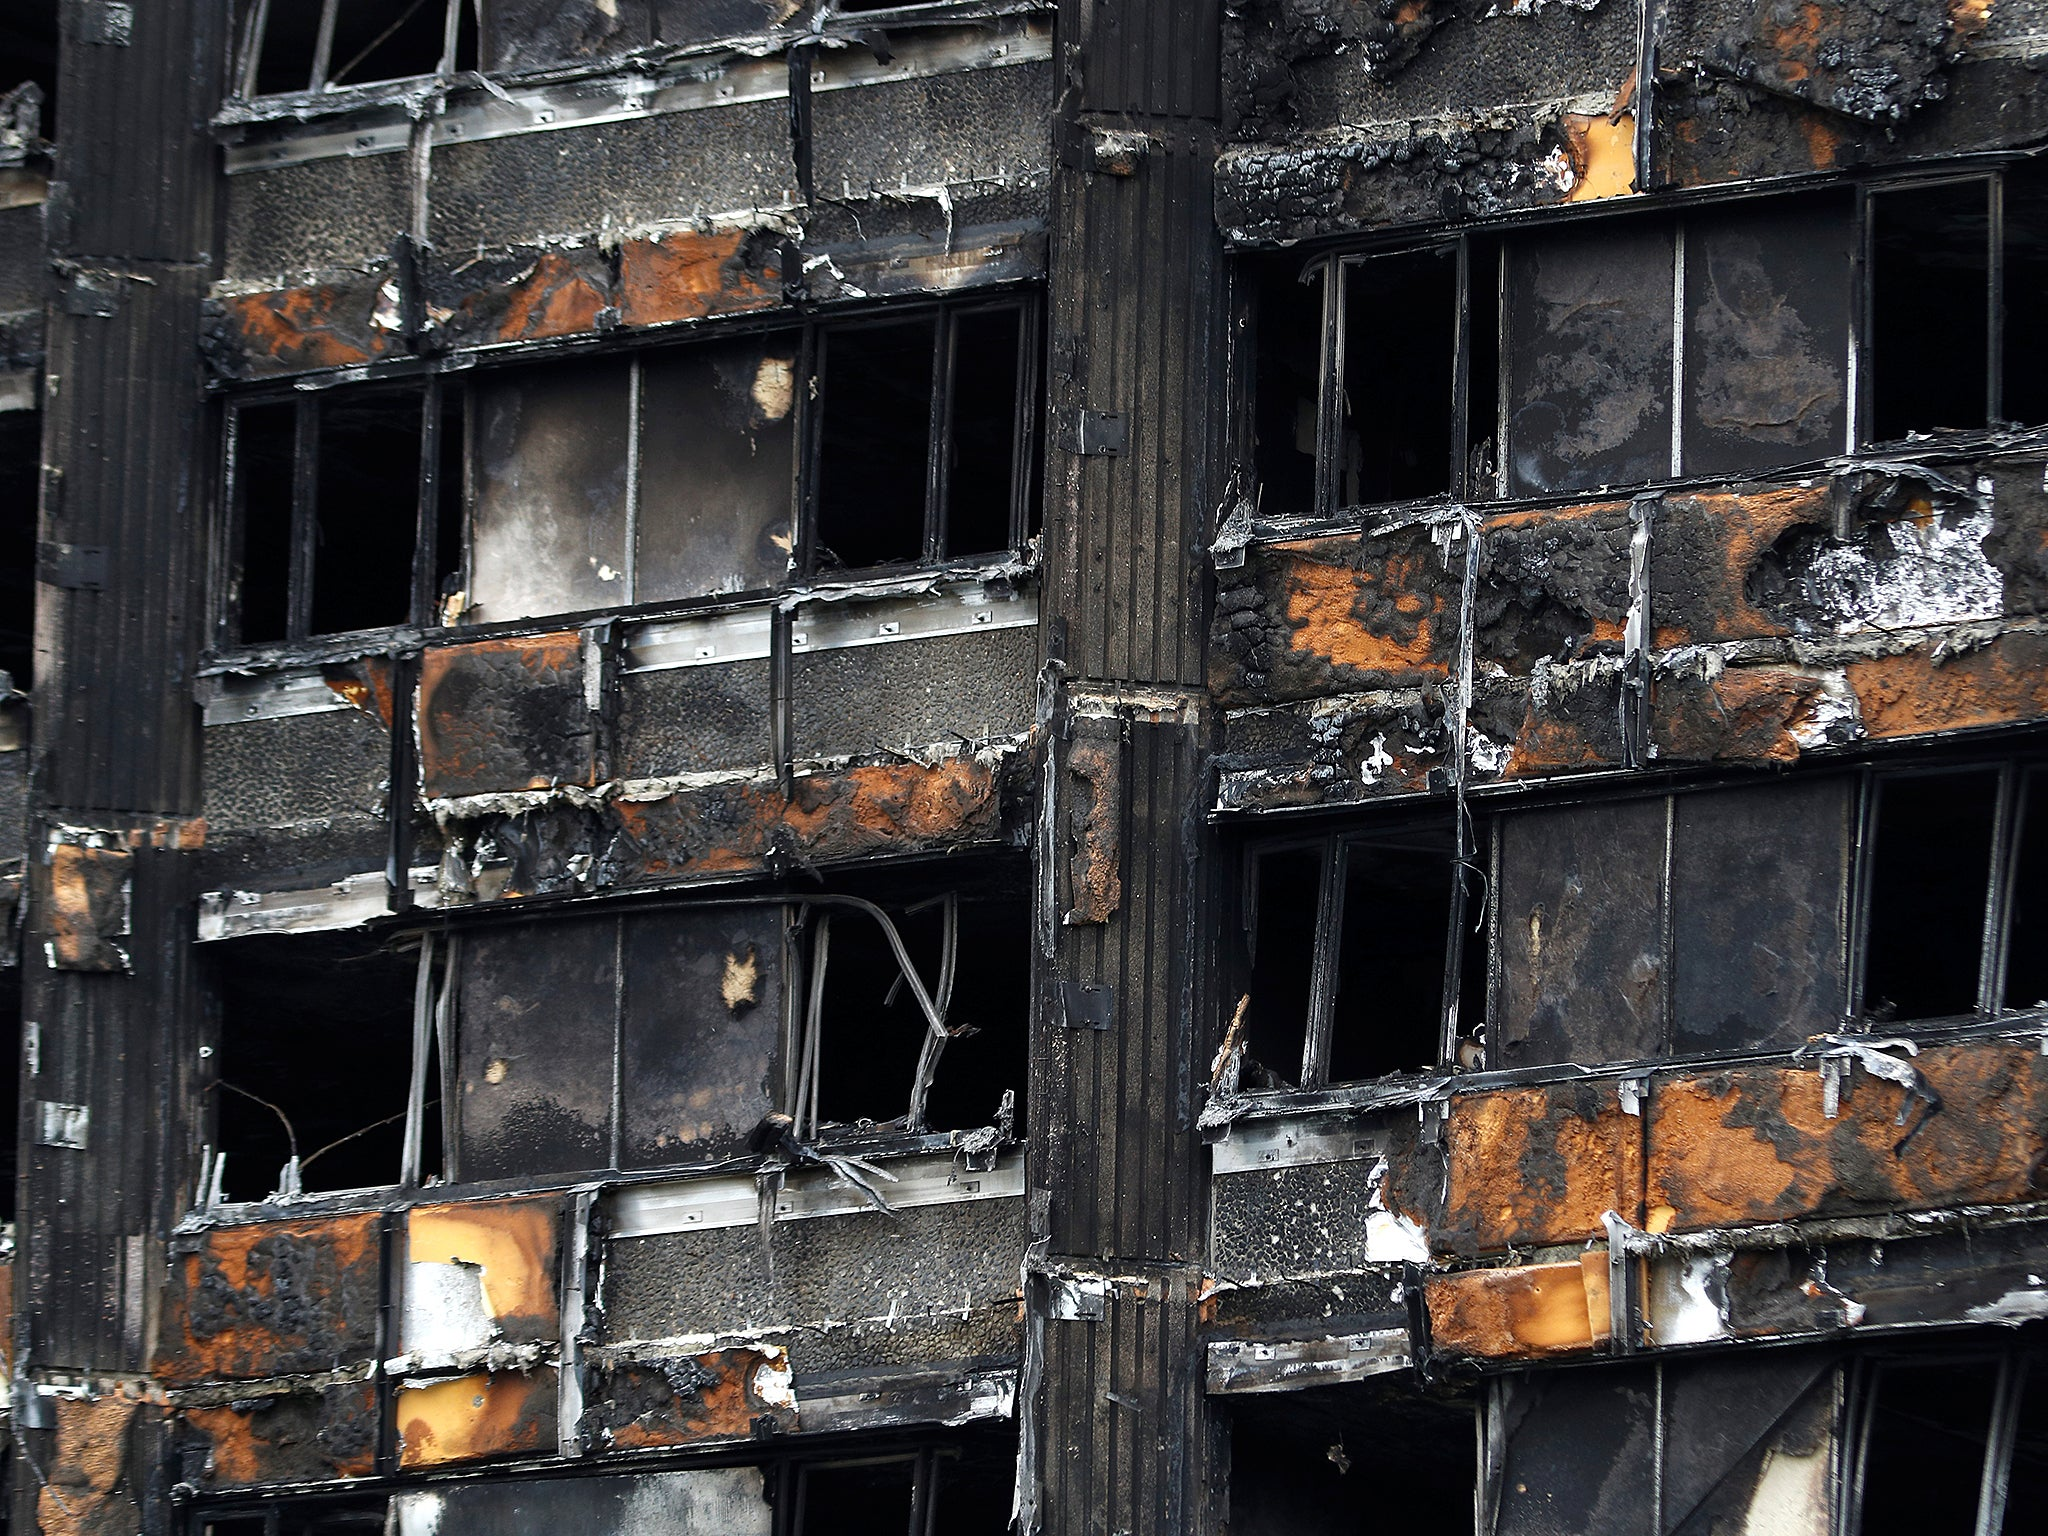 Grenfell Tower: Nine hospital trusts are 'category one' for fire risk and 38 hospitals are causing concern